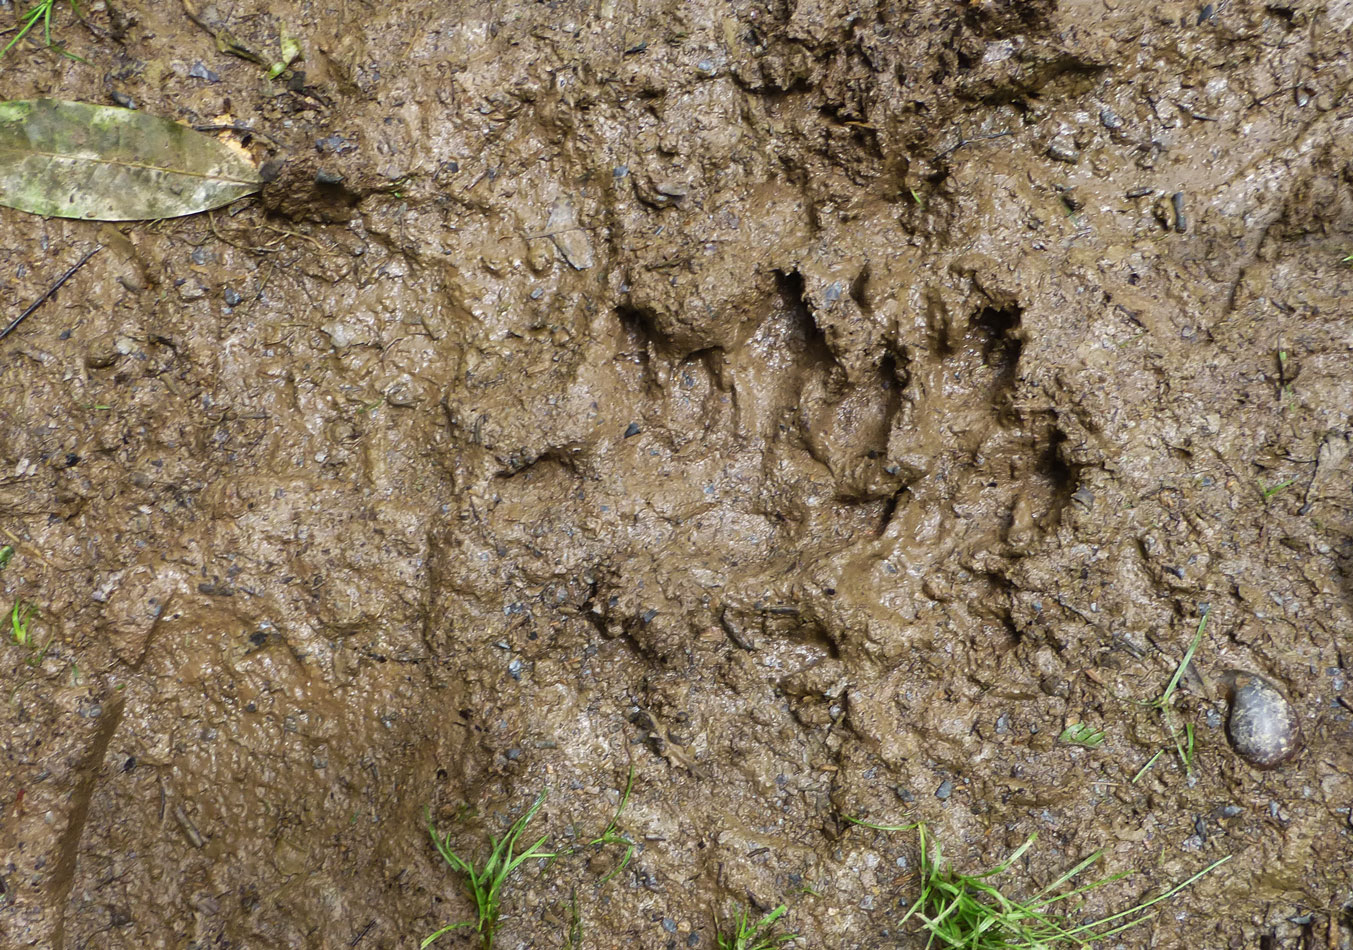 Near the water's edge, we saw footprints - likely from a capybara